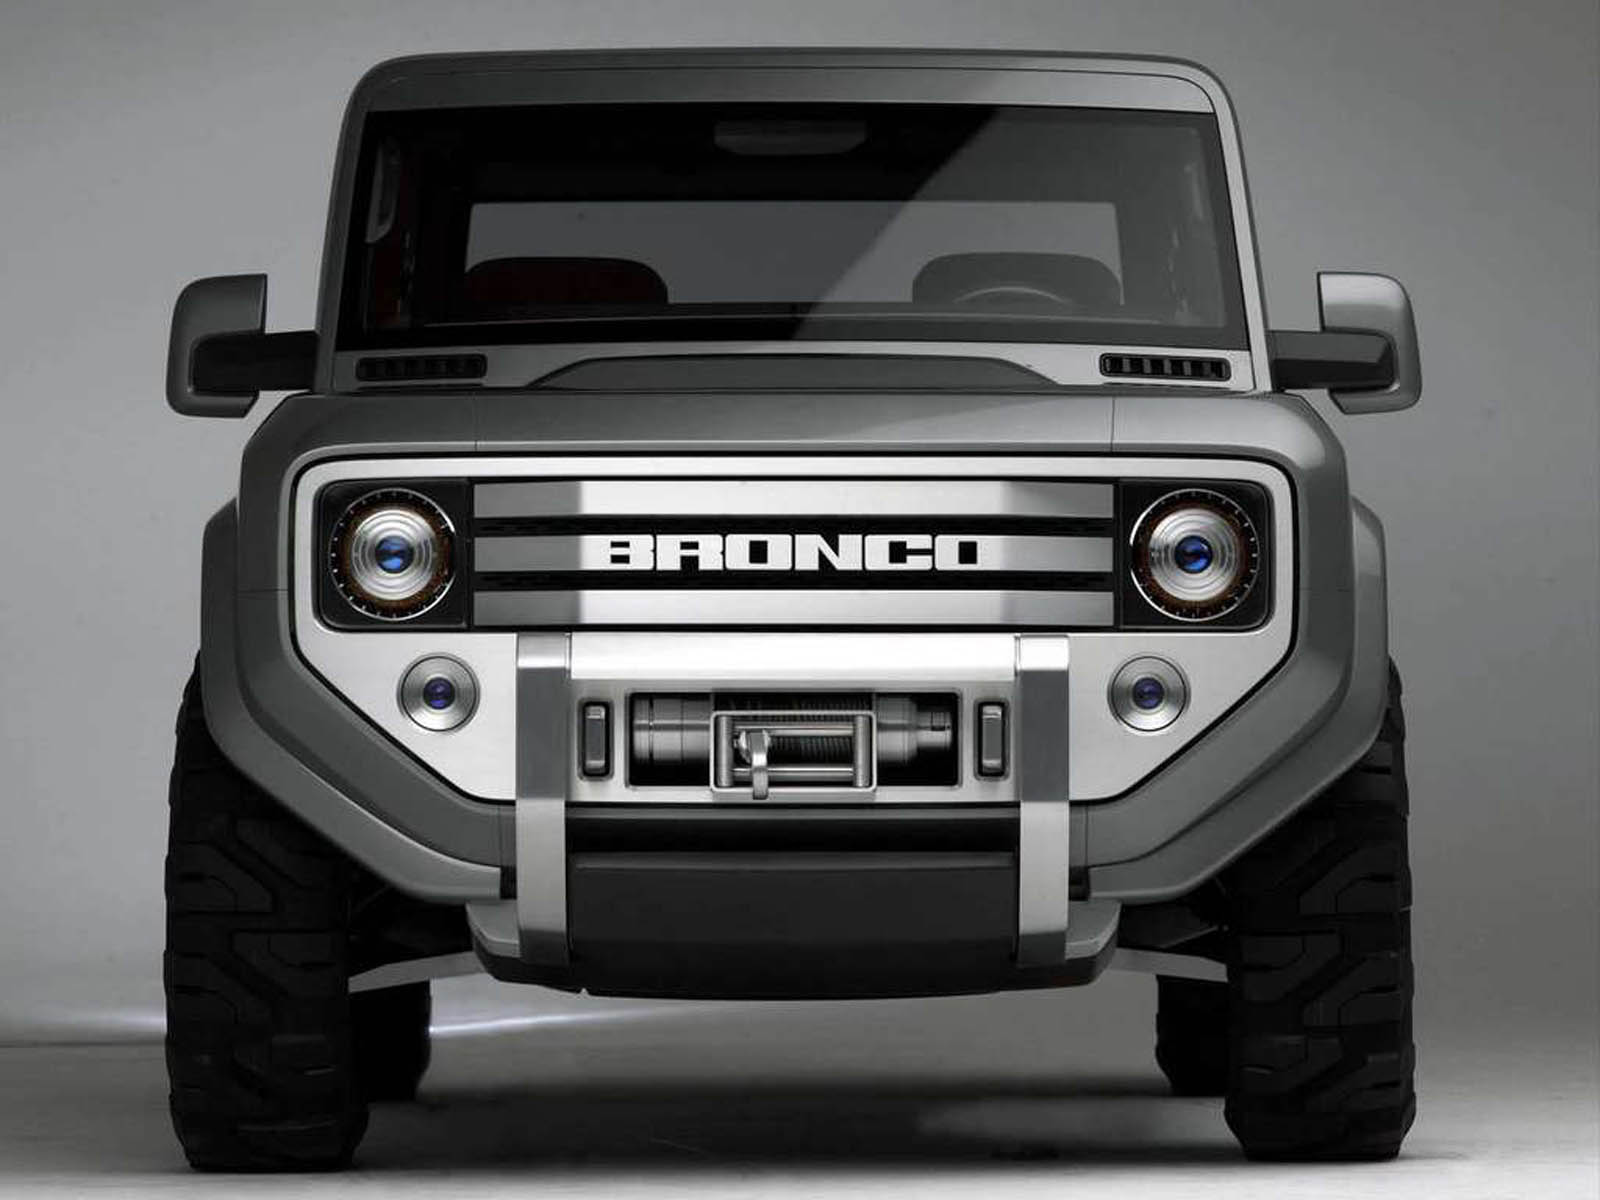 Ford Bronco Concept Car Wallpapers